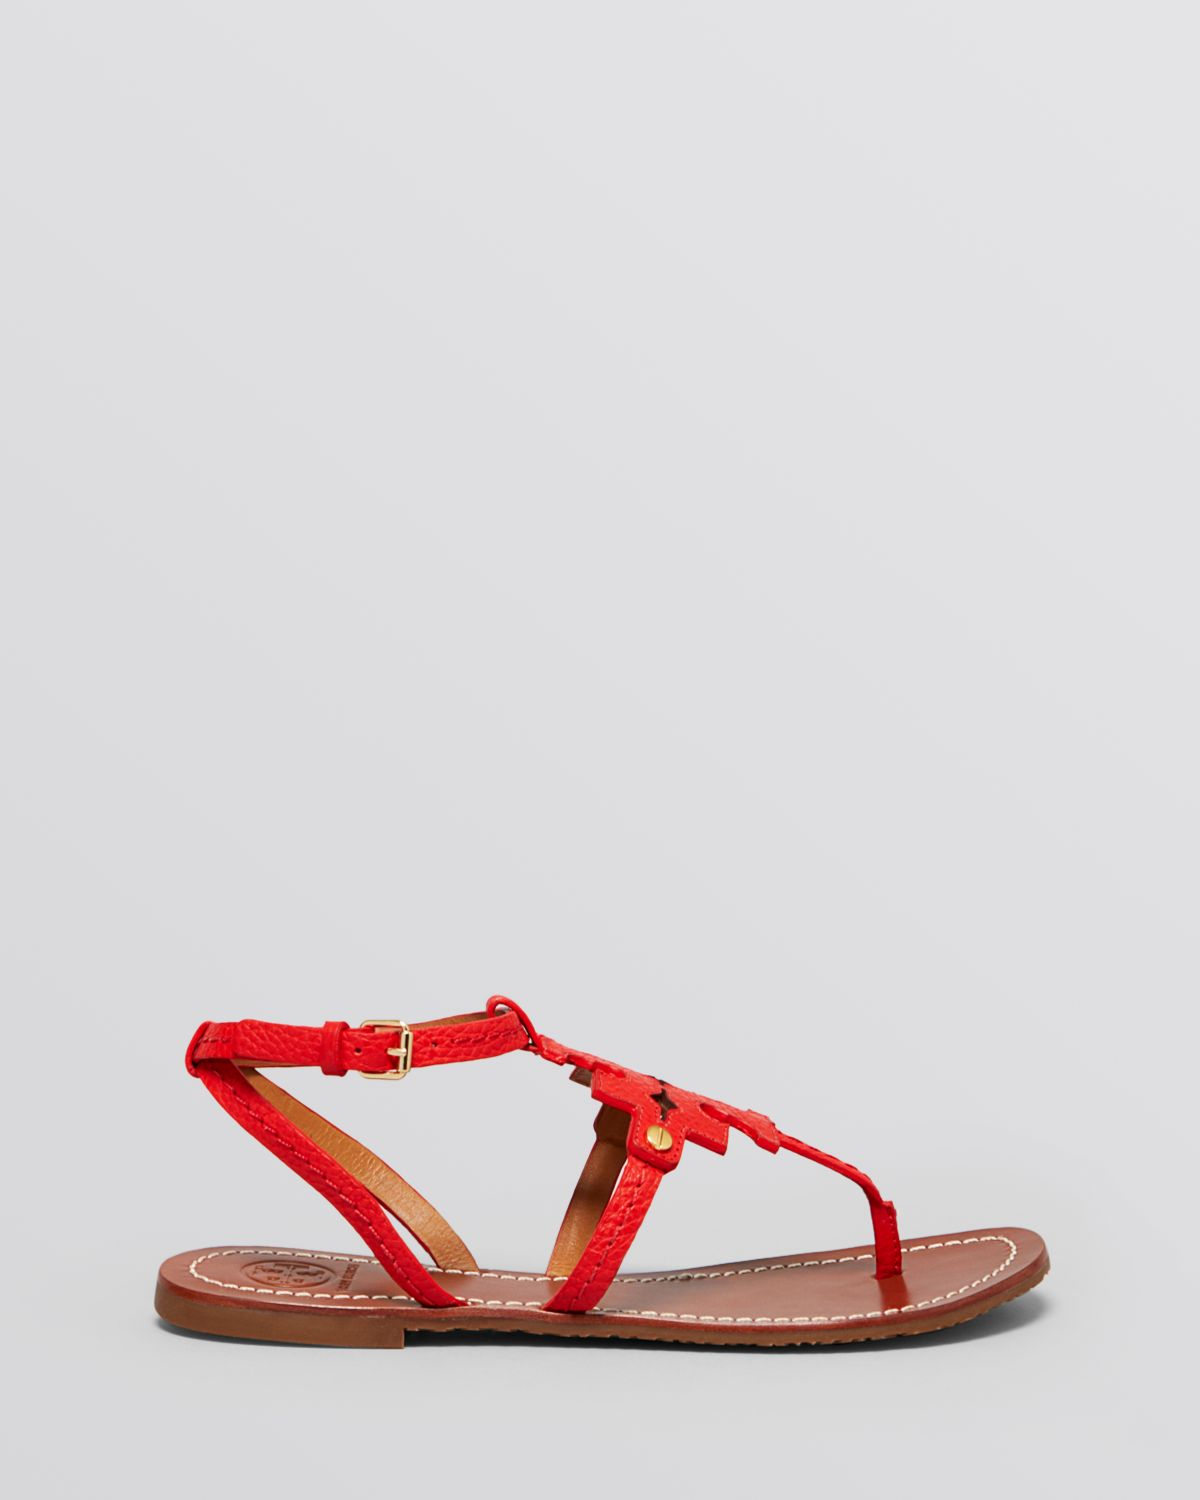 737a35df059c8b Tory Burch Flat Thong Sandals - Chandler Logo in Red - Lyst